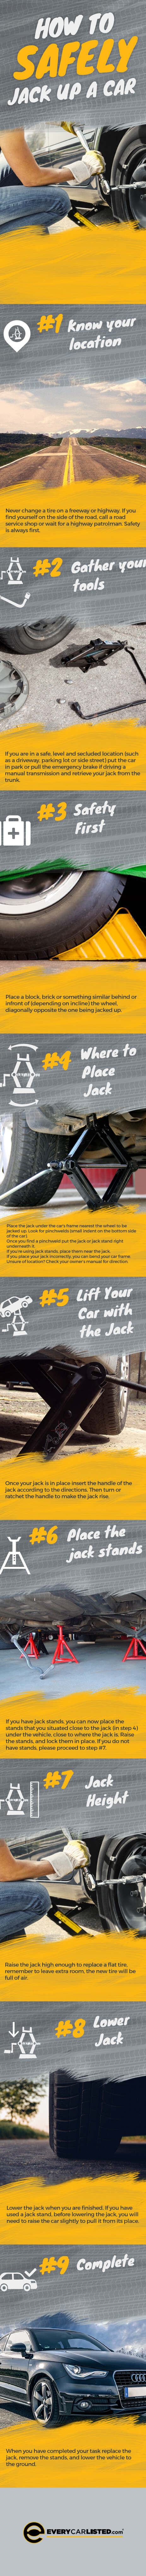 How To Safely Jack Up Your Car